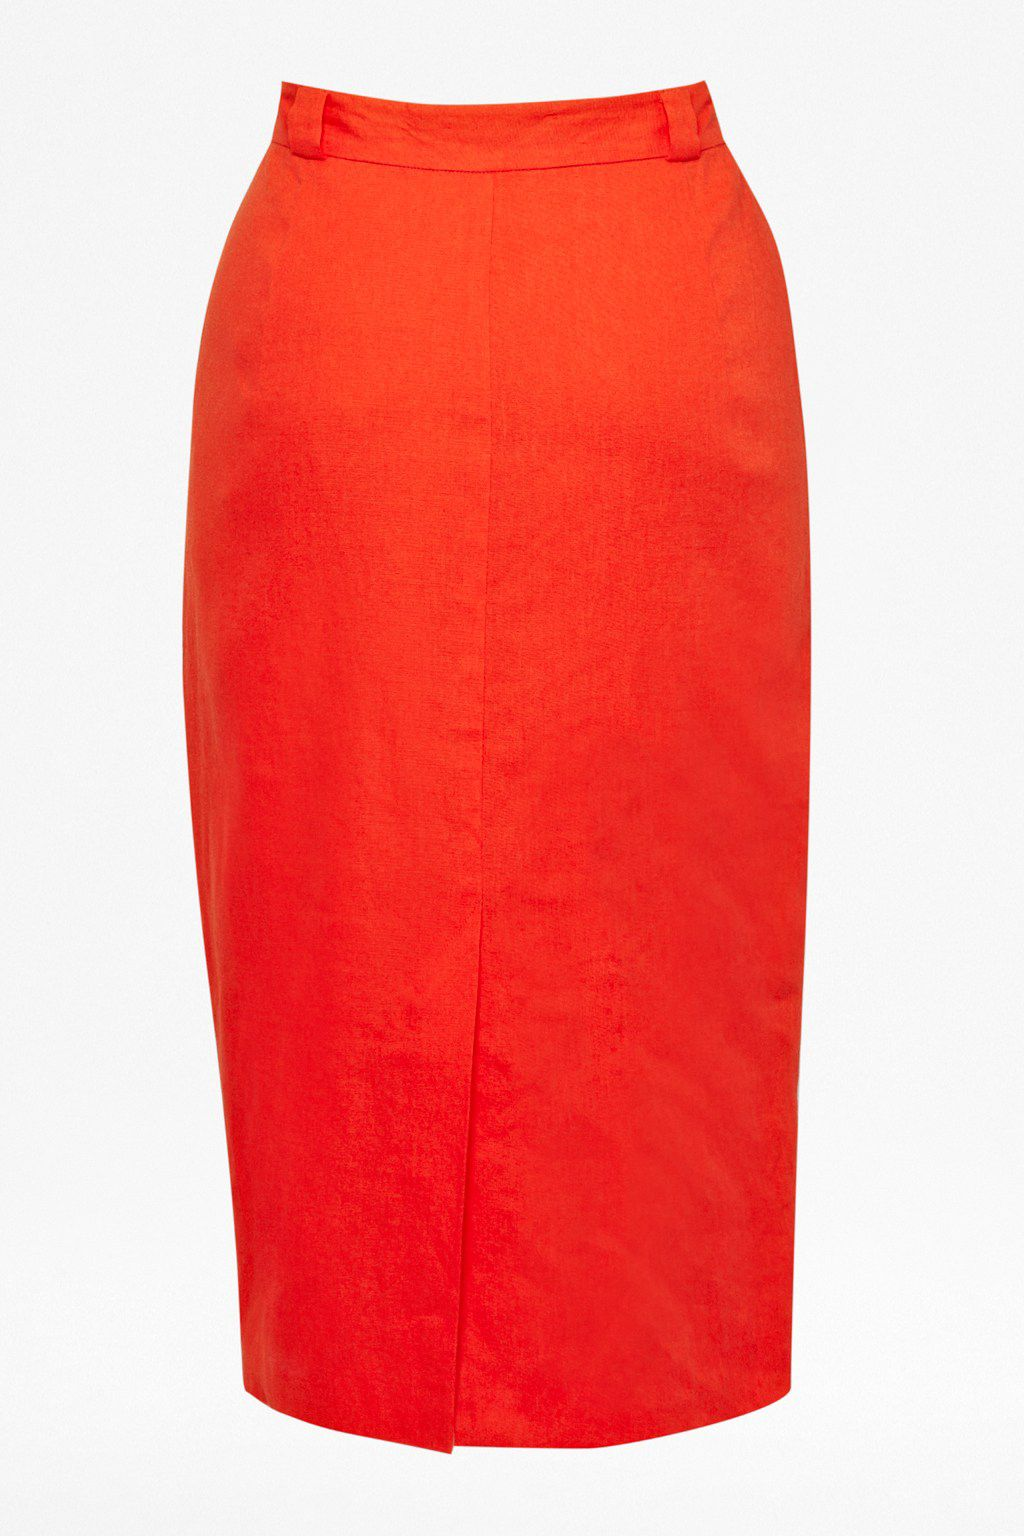 Laguna linen pencil skirt